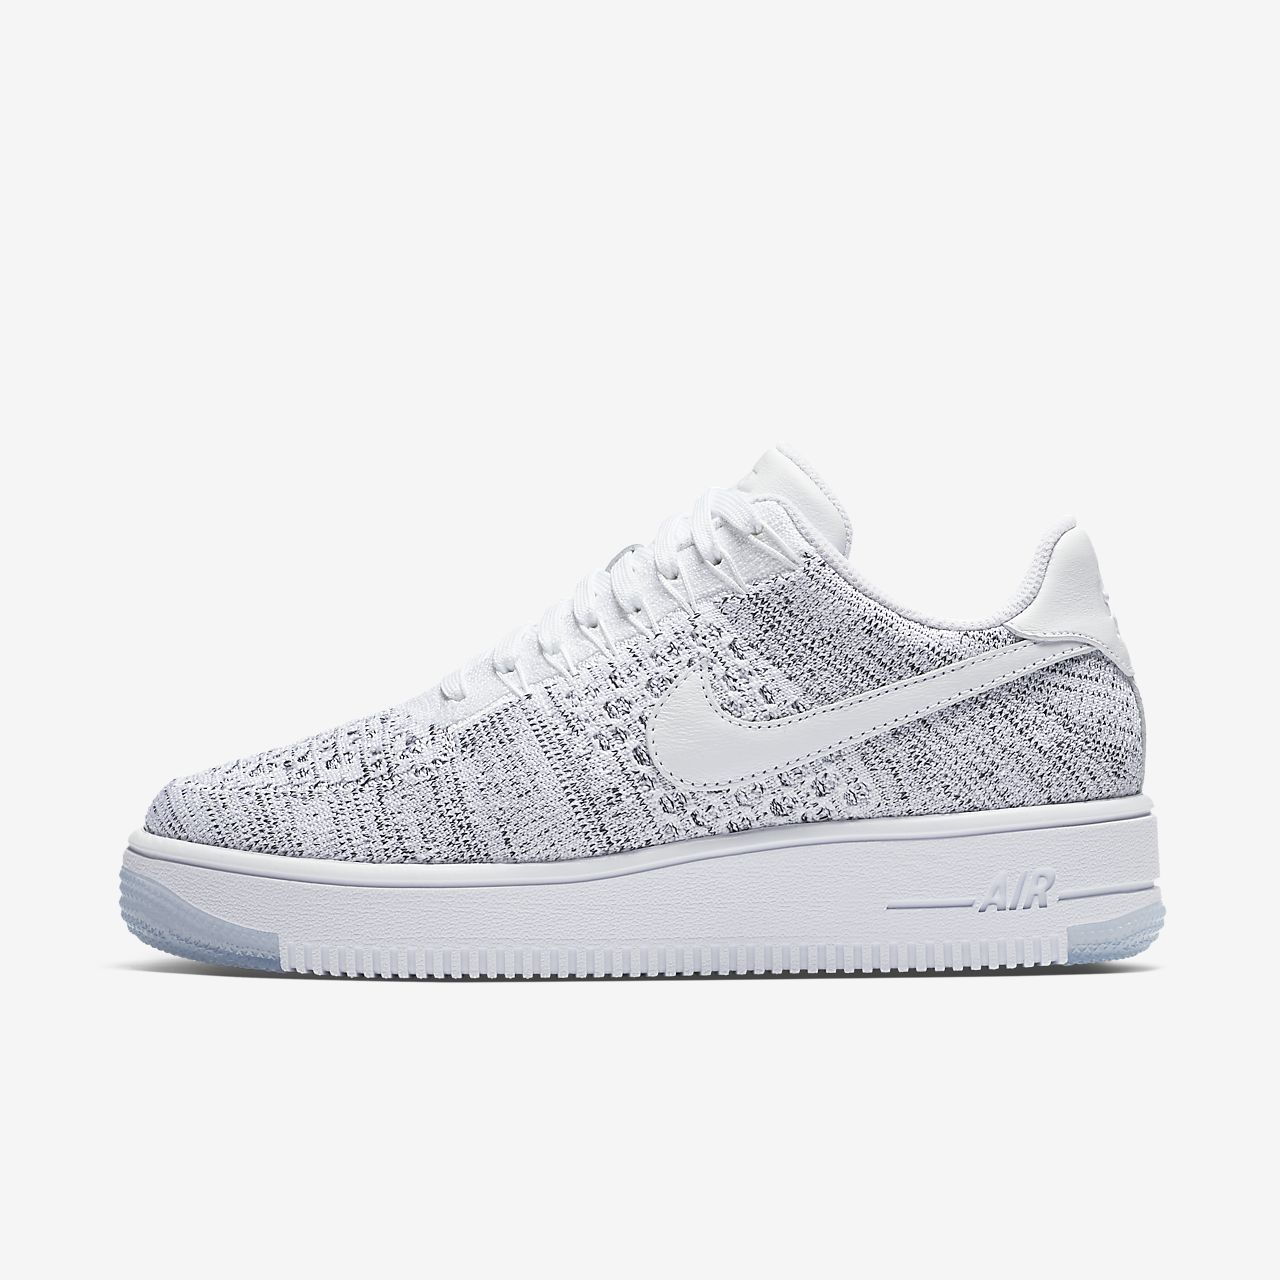 nike air force 1 low 07 nba nz